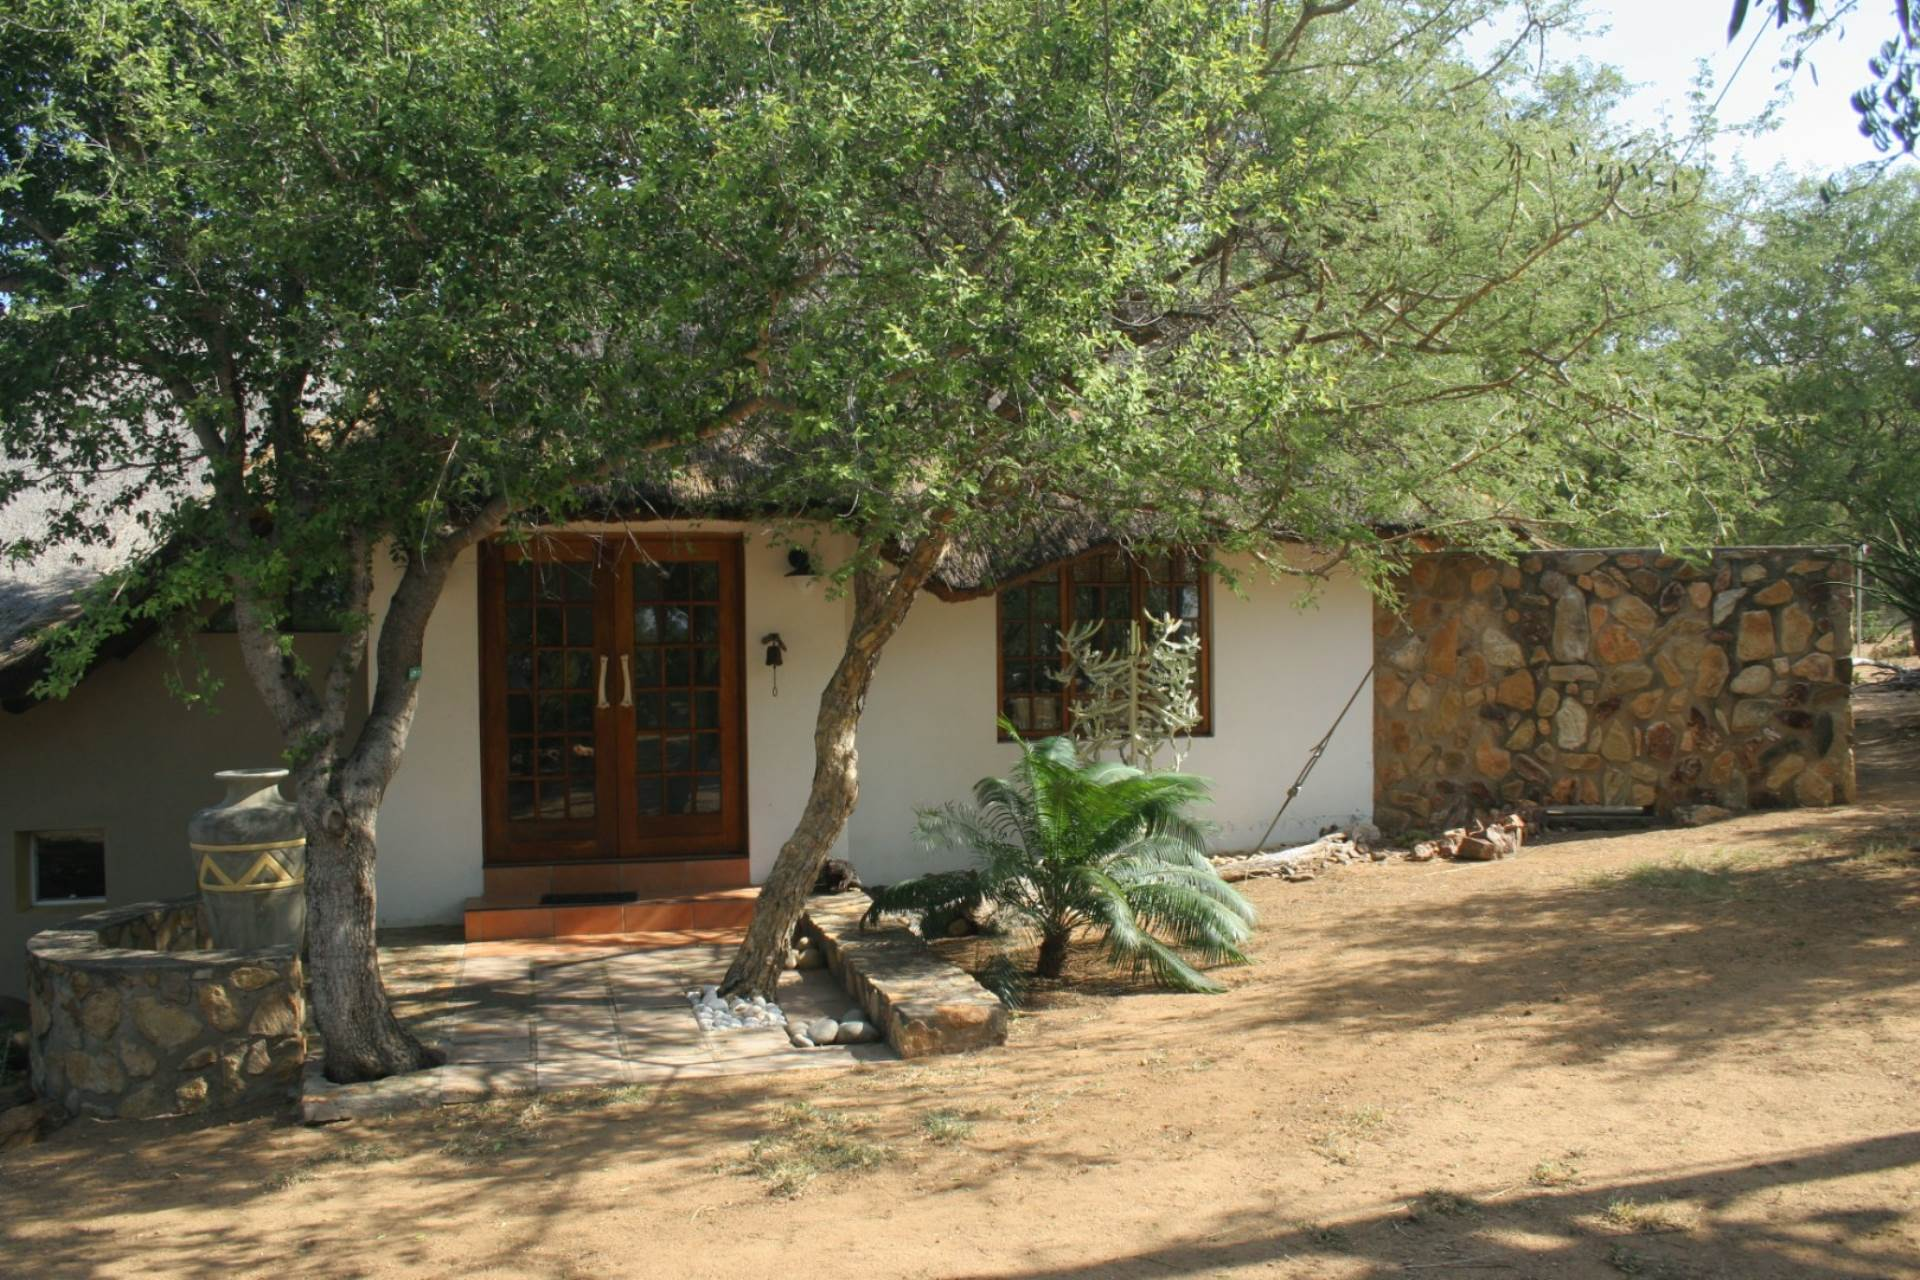 4 BedroomHouse To Rent In Ndlovumzi Nature Reserve